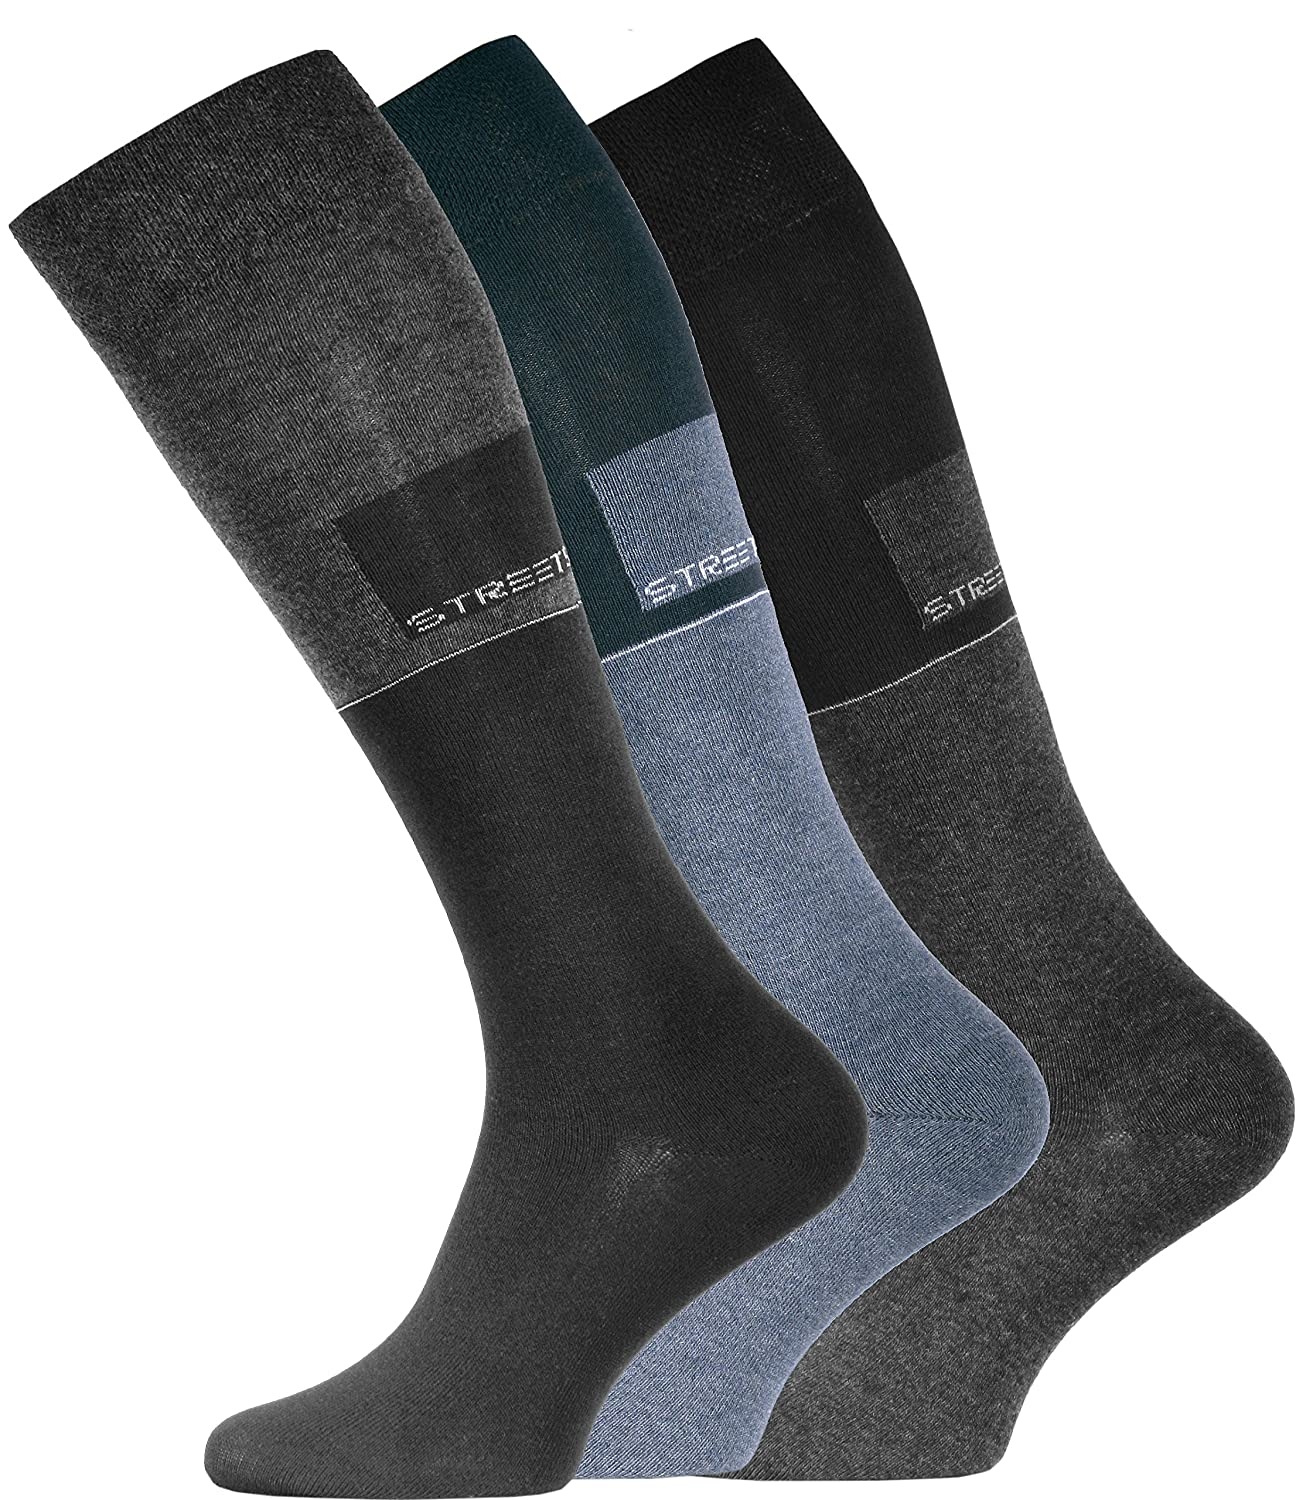 3 Pair original VCA® Mens STREET Knee-High Socks, Soft Top